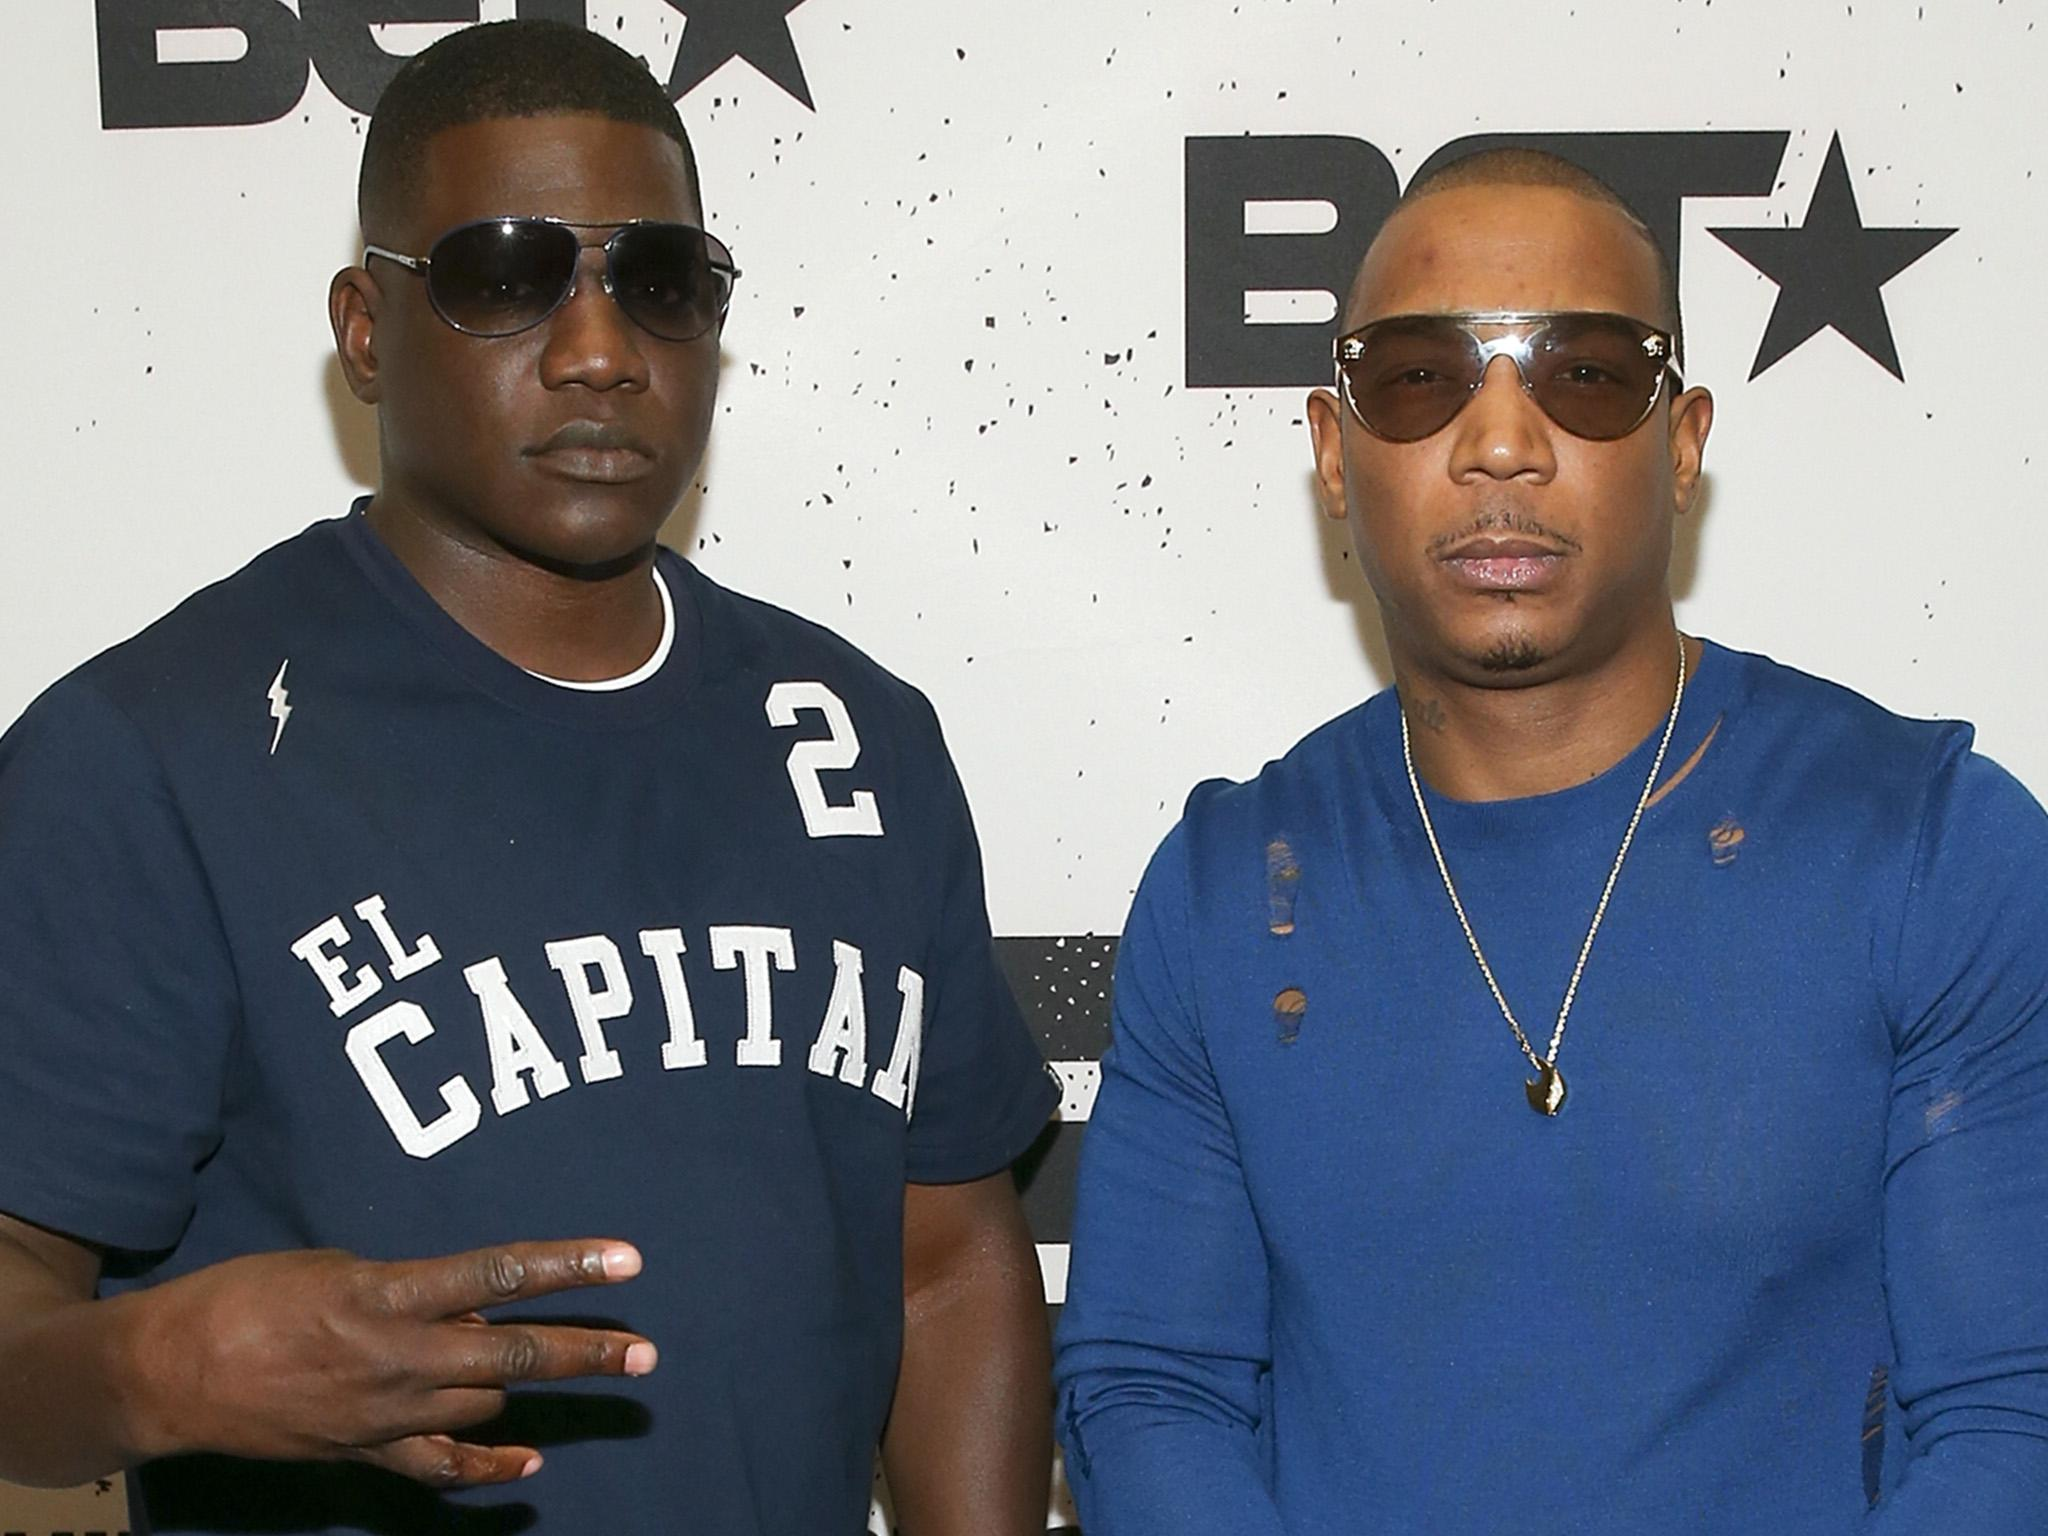 50 Cent and Ja Rule: A beef history   The Independent